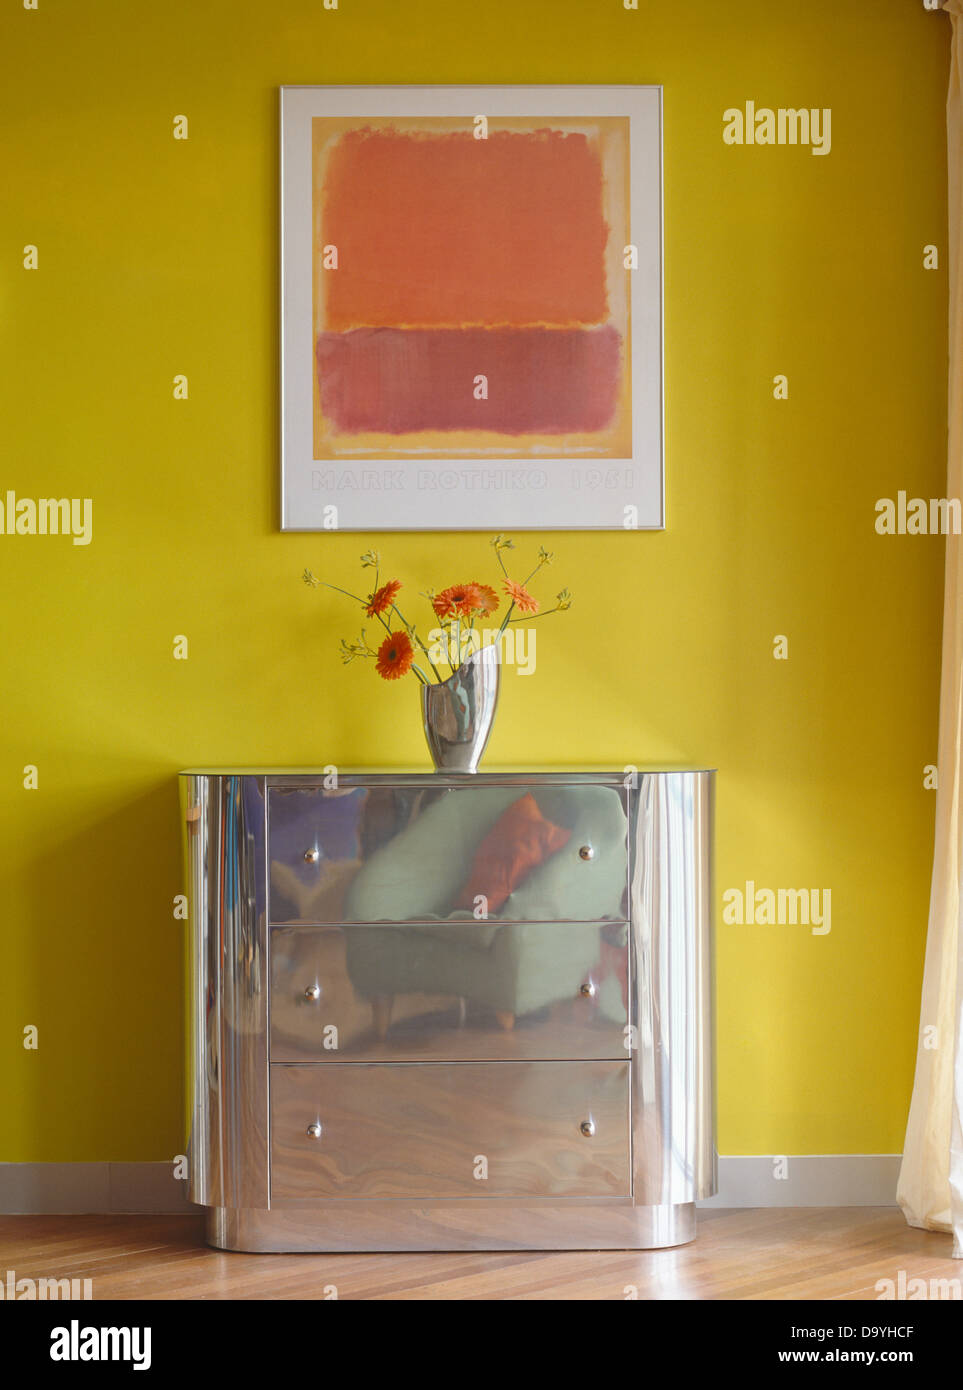 framed rothko print on wall above chest of drawers with vase of flowers against vibrant yellow wall